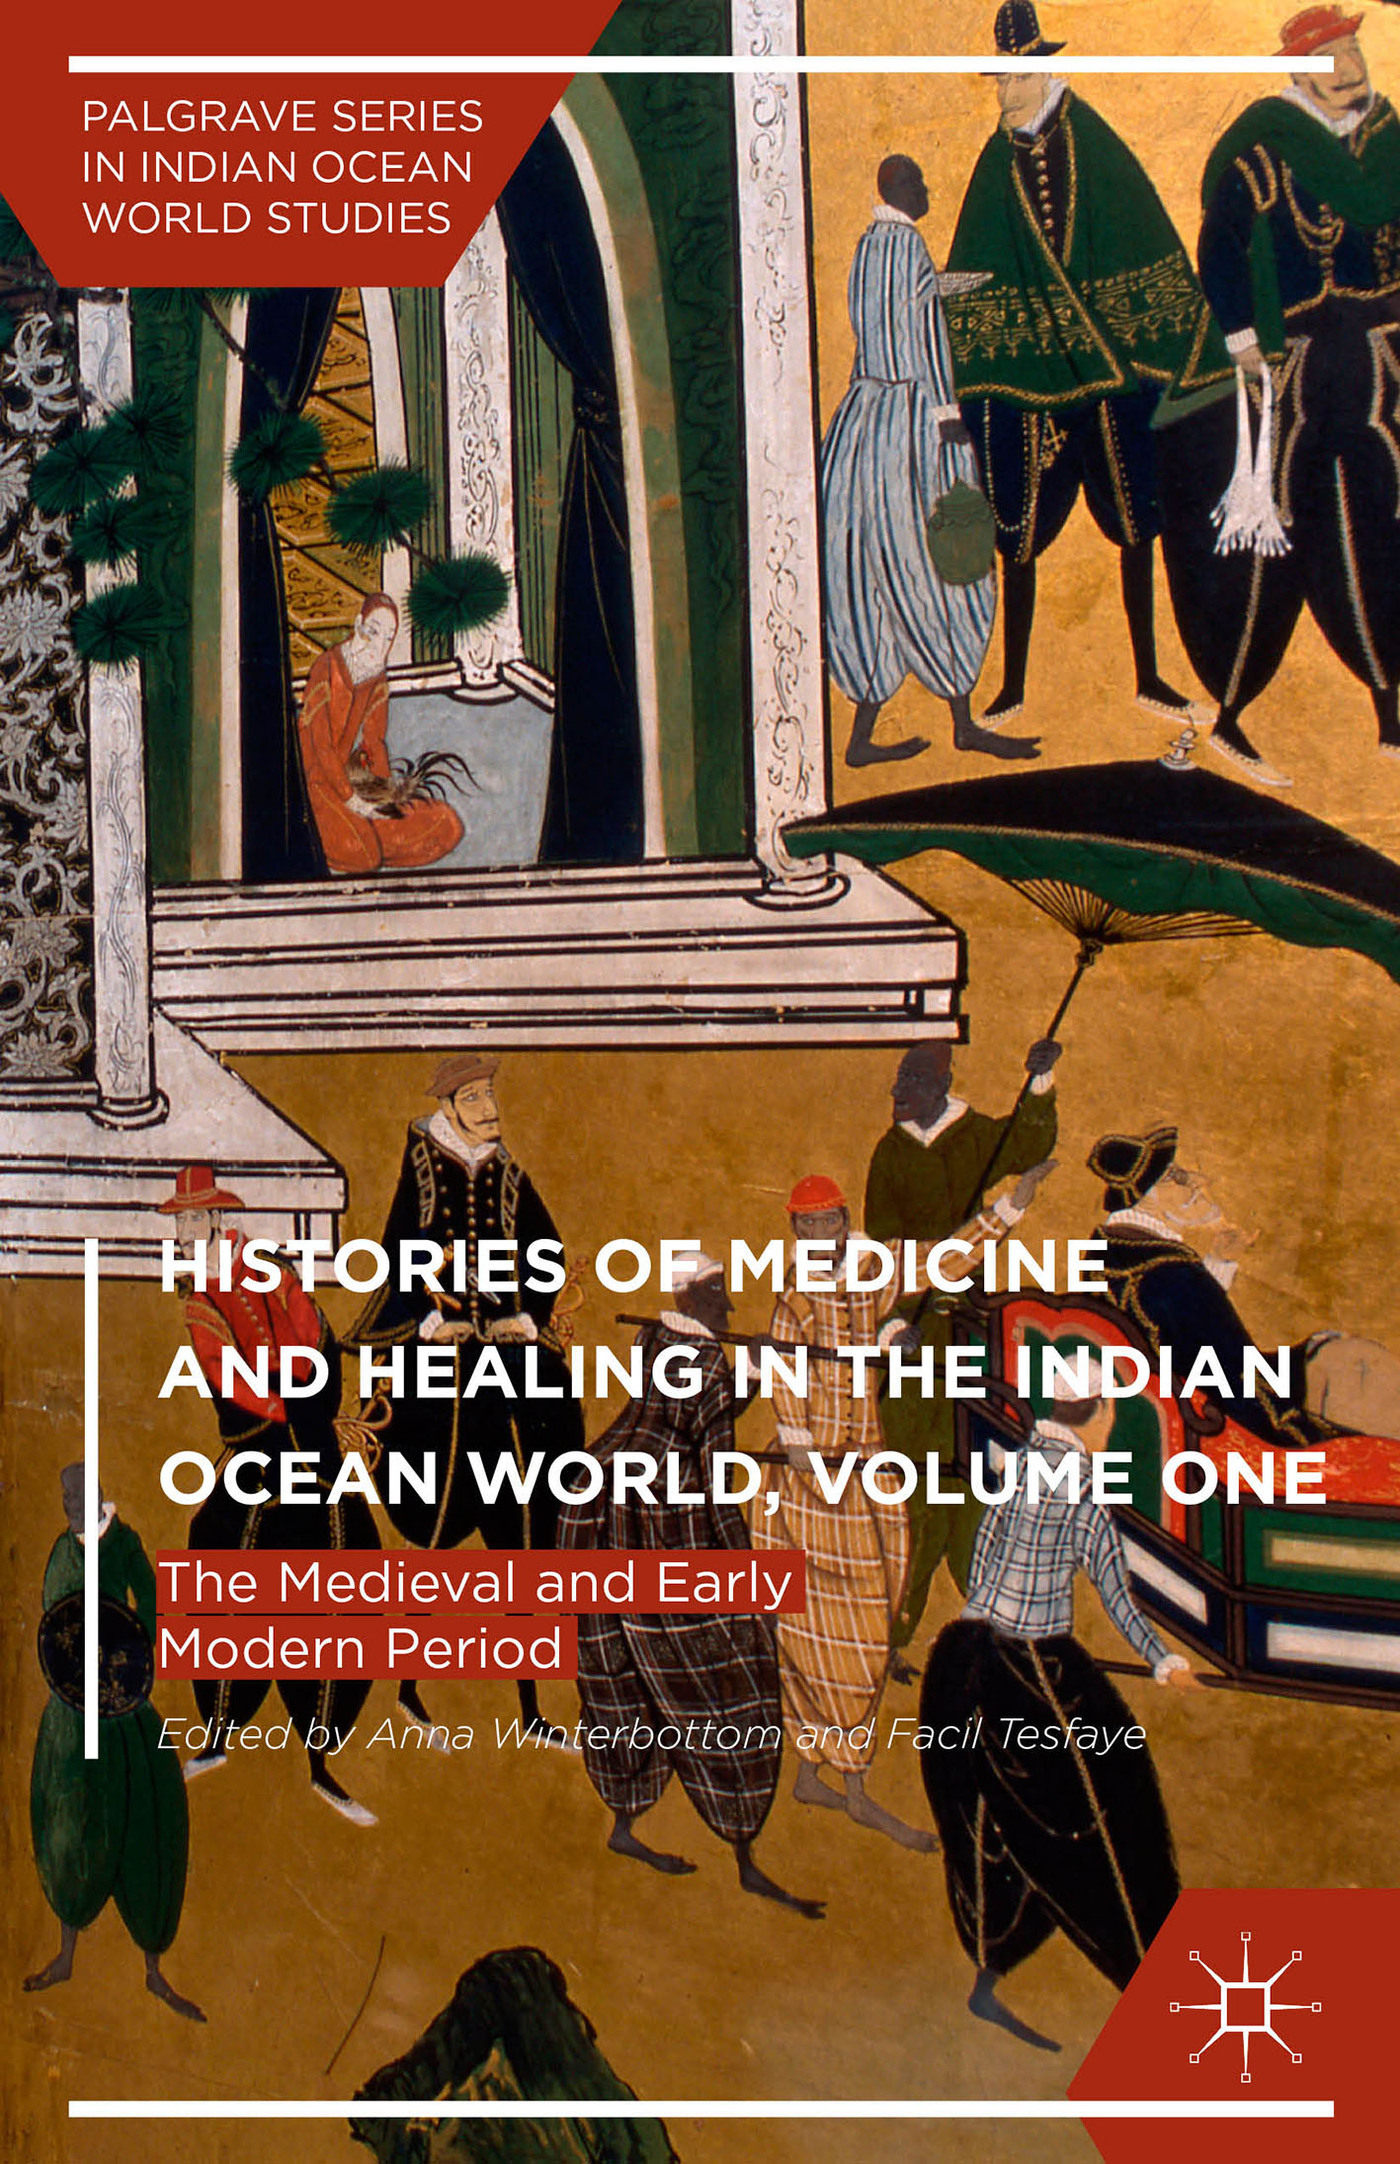 Histories of Medicine and Healing in the Indian Ocean World, Volume One: The Medieval and Early Modern Period Anna Winterbottom